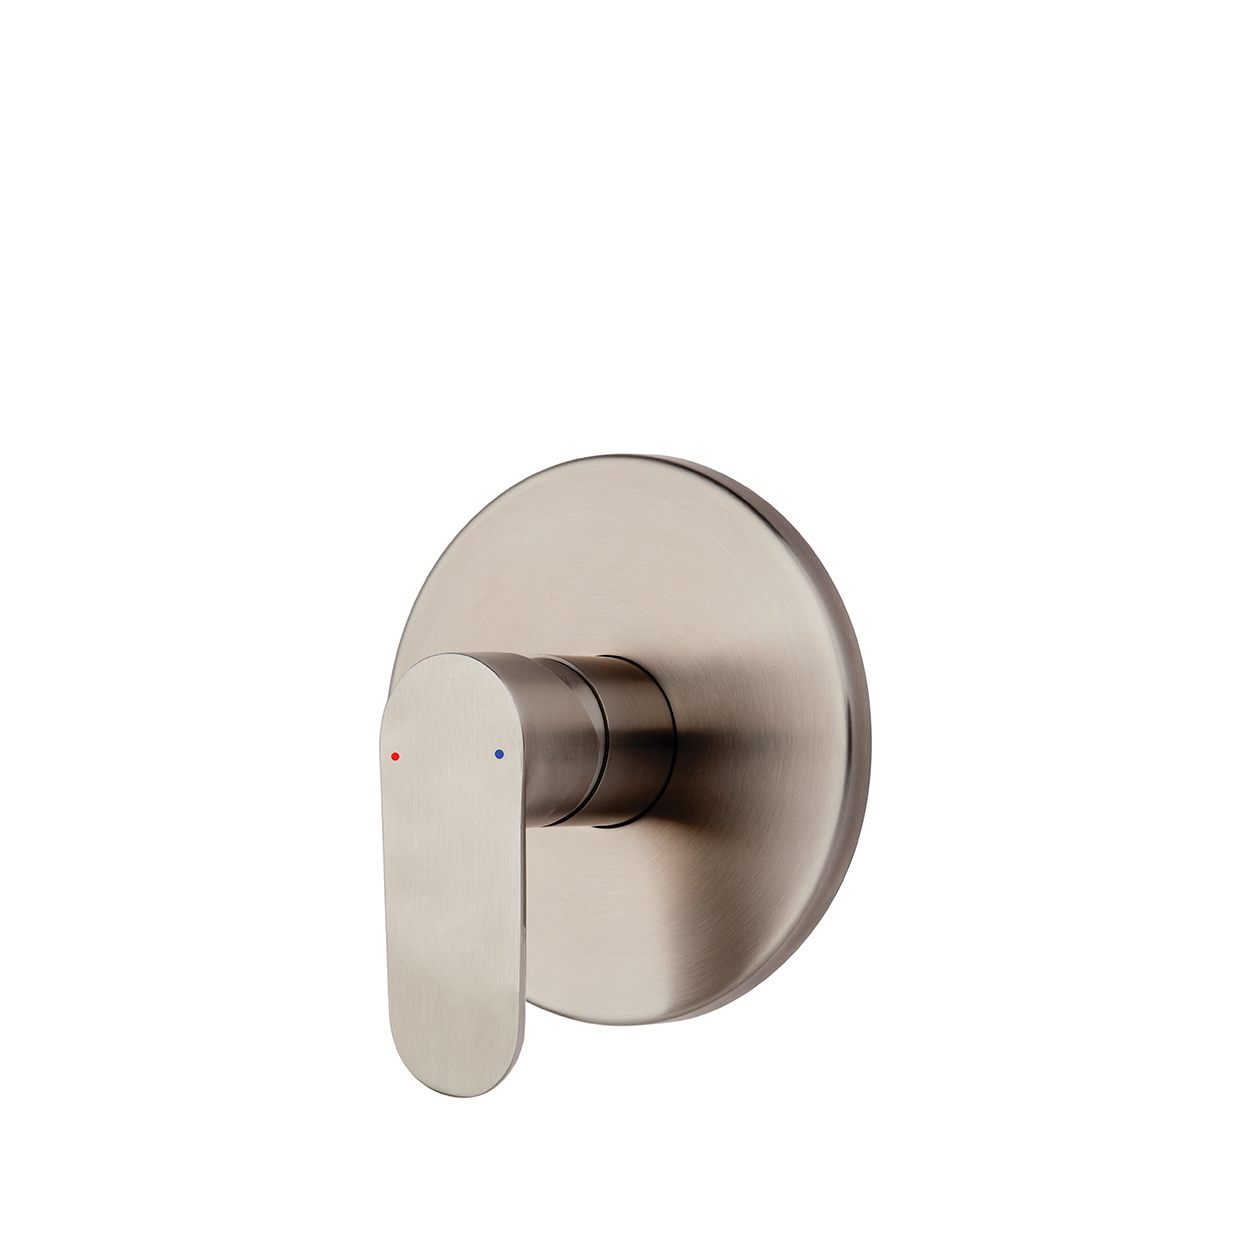 FORENO PURITY Minimal Shower Mixer | Stainless Steel (PUR030)